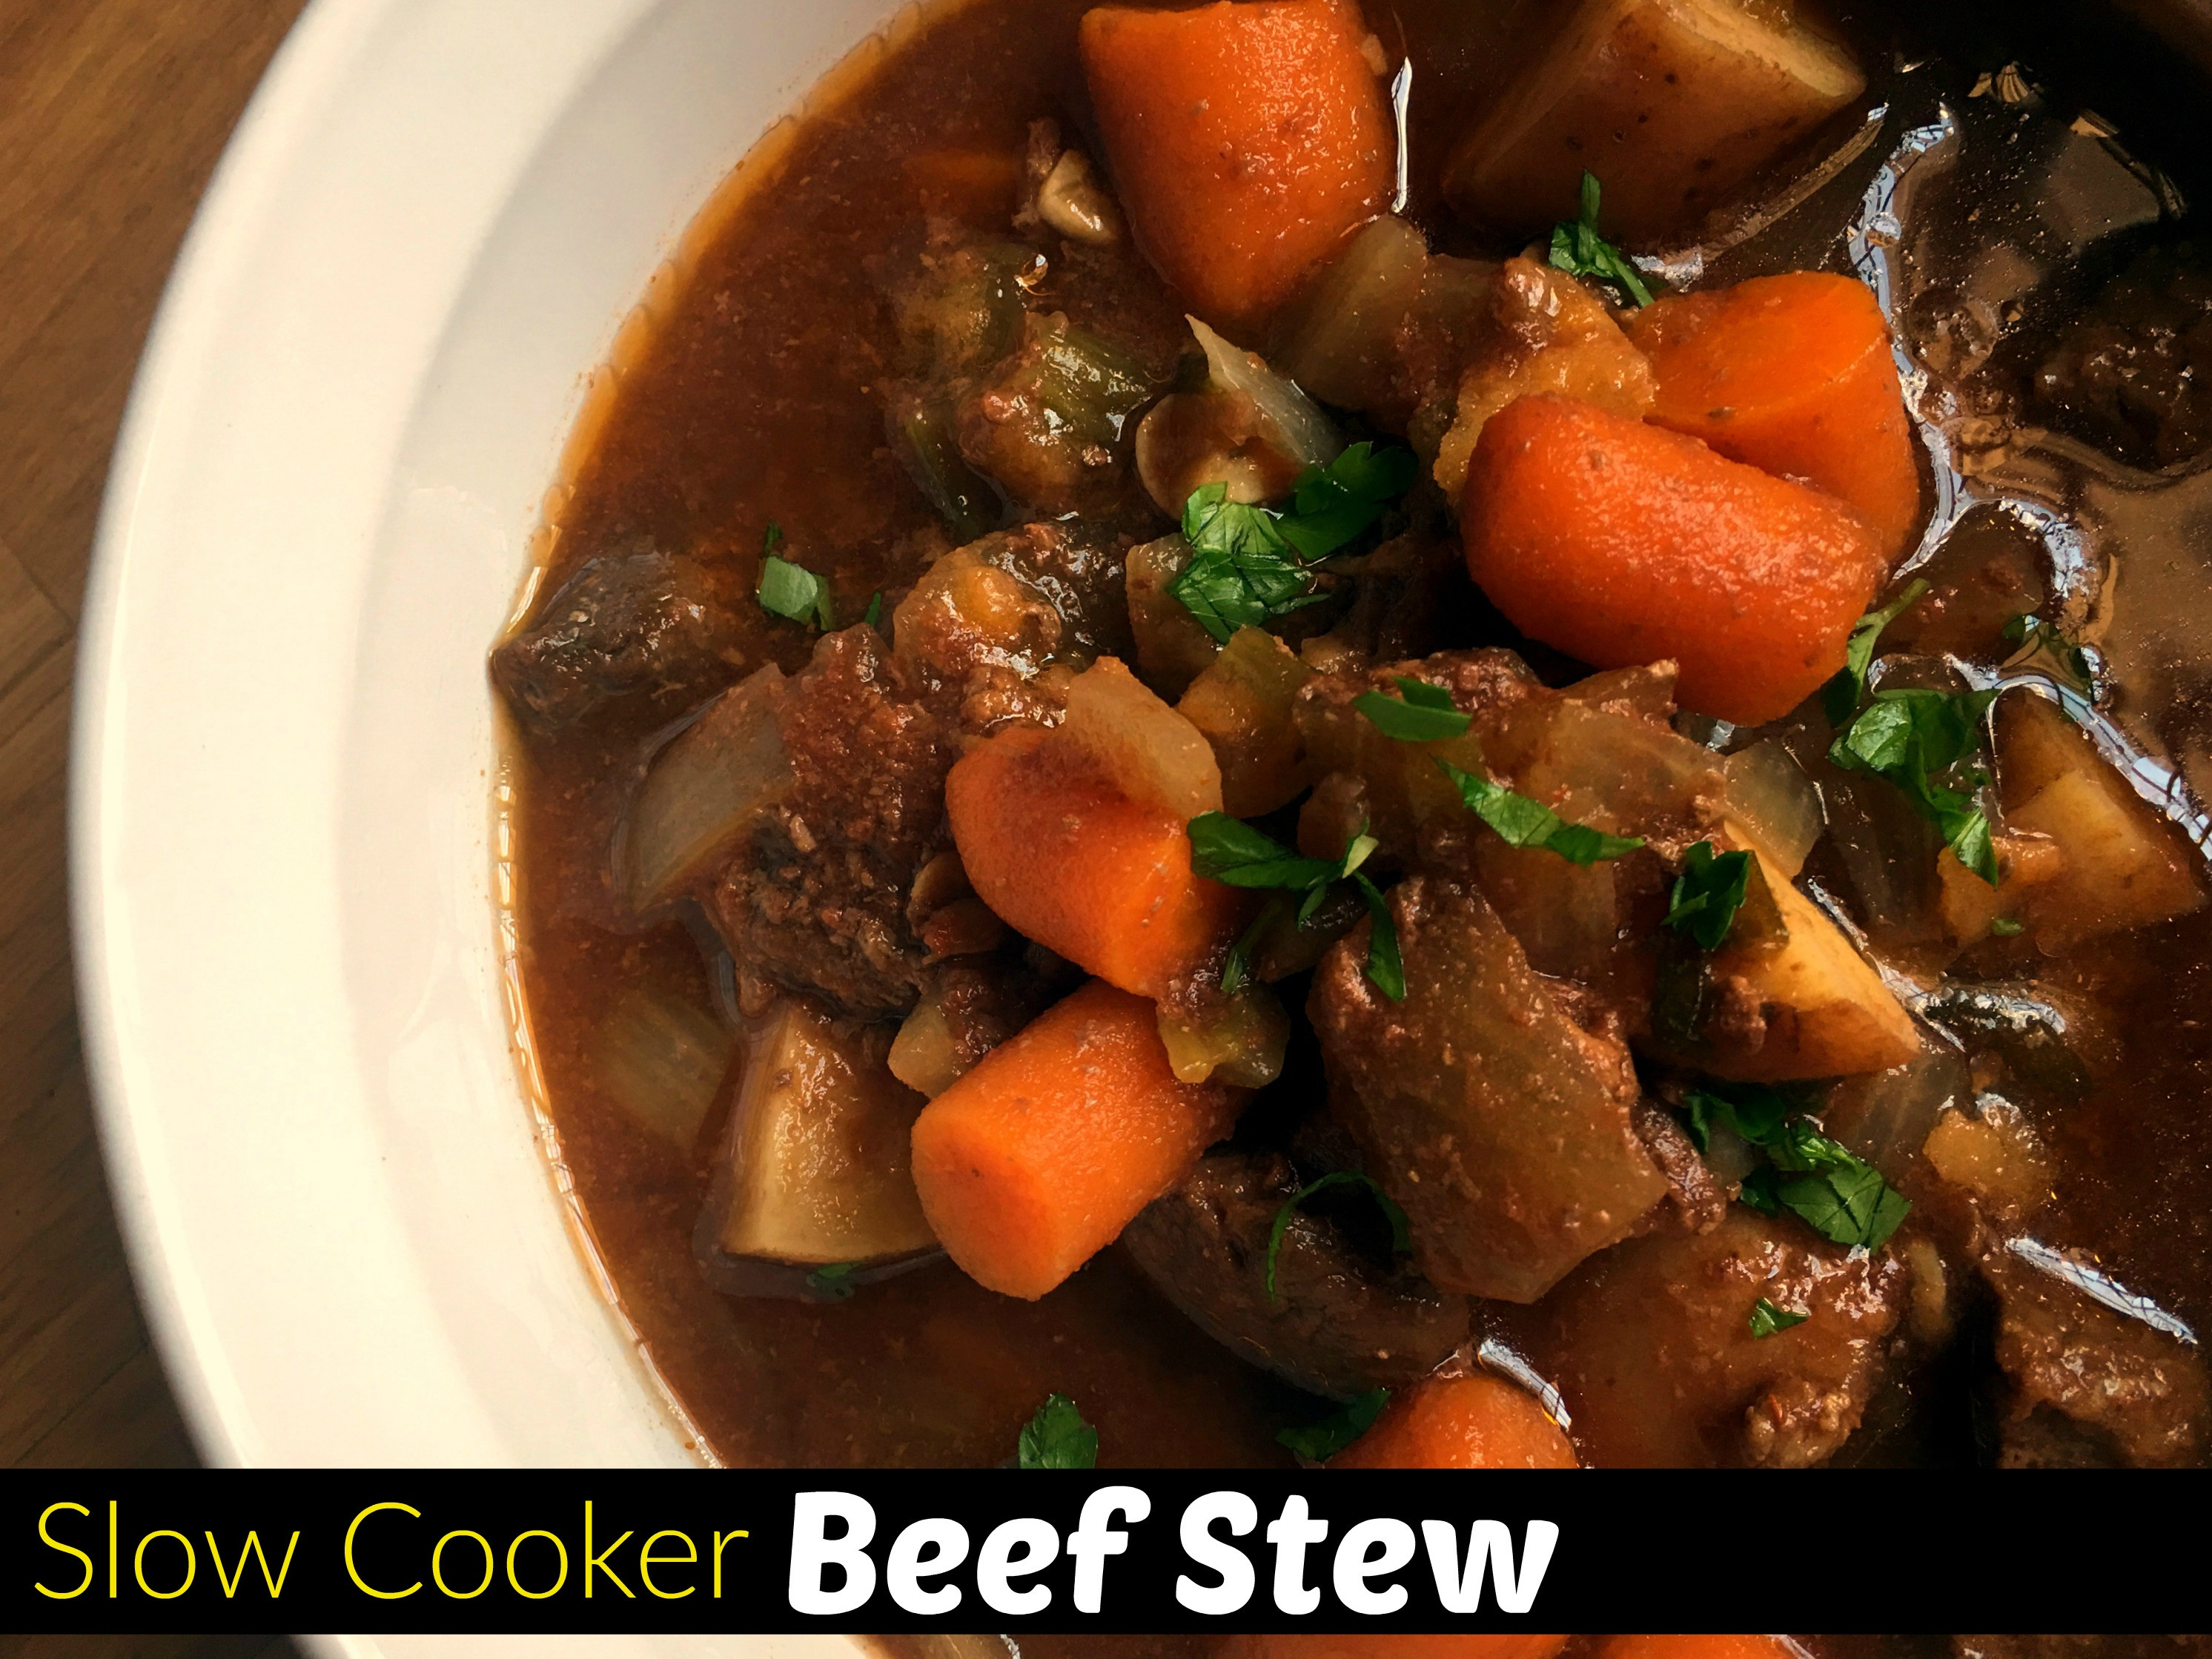 Slow Cooker Beef Stew Recipe  Slow Cooker Beef Stew Aunt Bee s Recipes